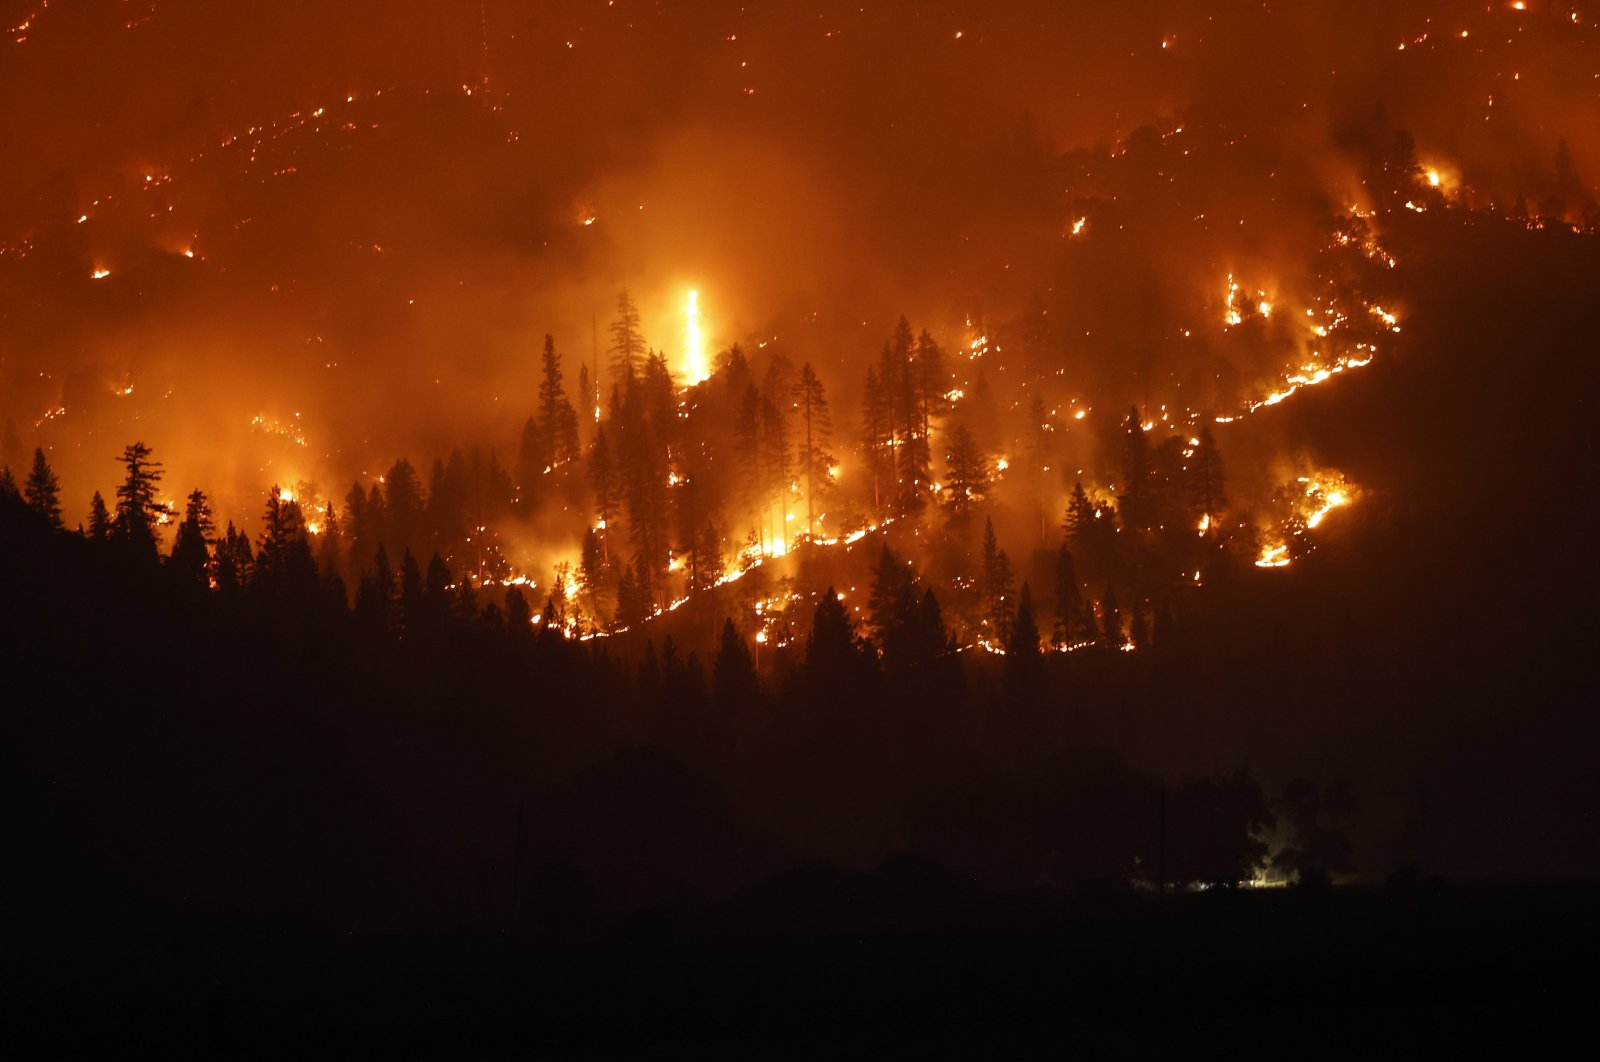 The Dixie fire burns the forest in the mountains as seen from Taylorsville, California, U.S., Aug. 13, 2021. (EPA Photo)